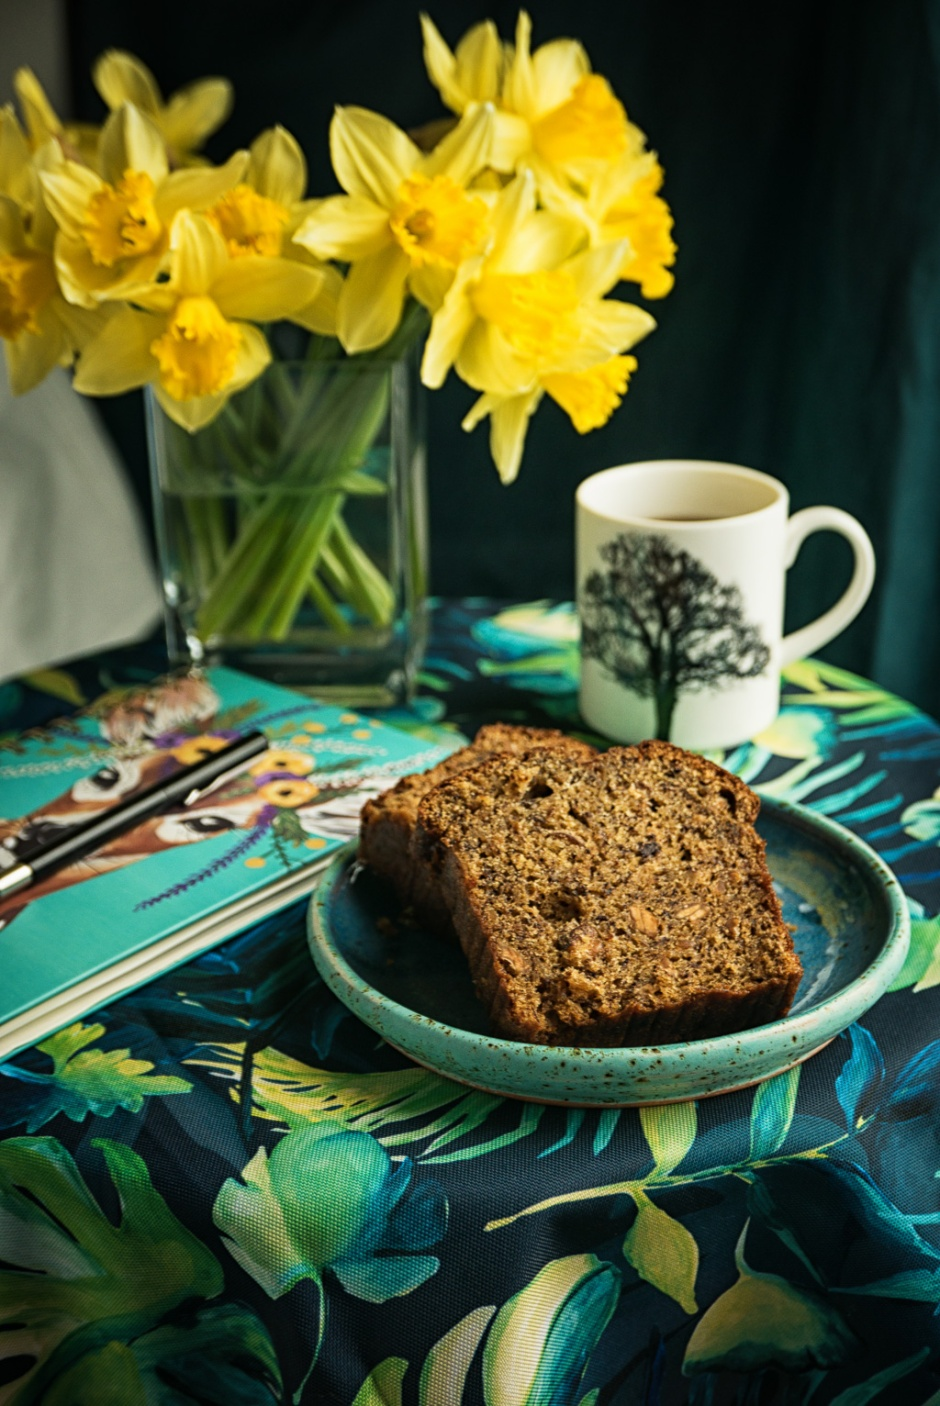 Otolenghi's banana bread with almonds